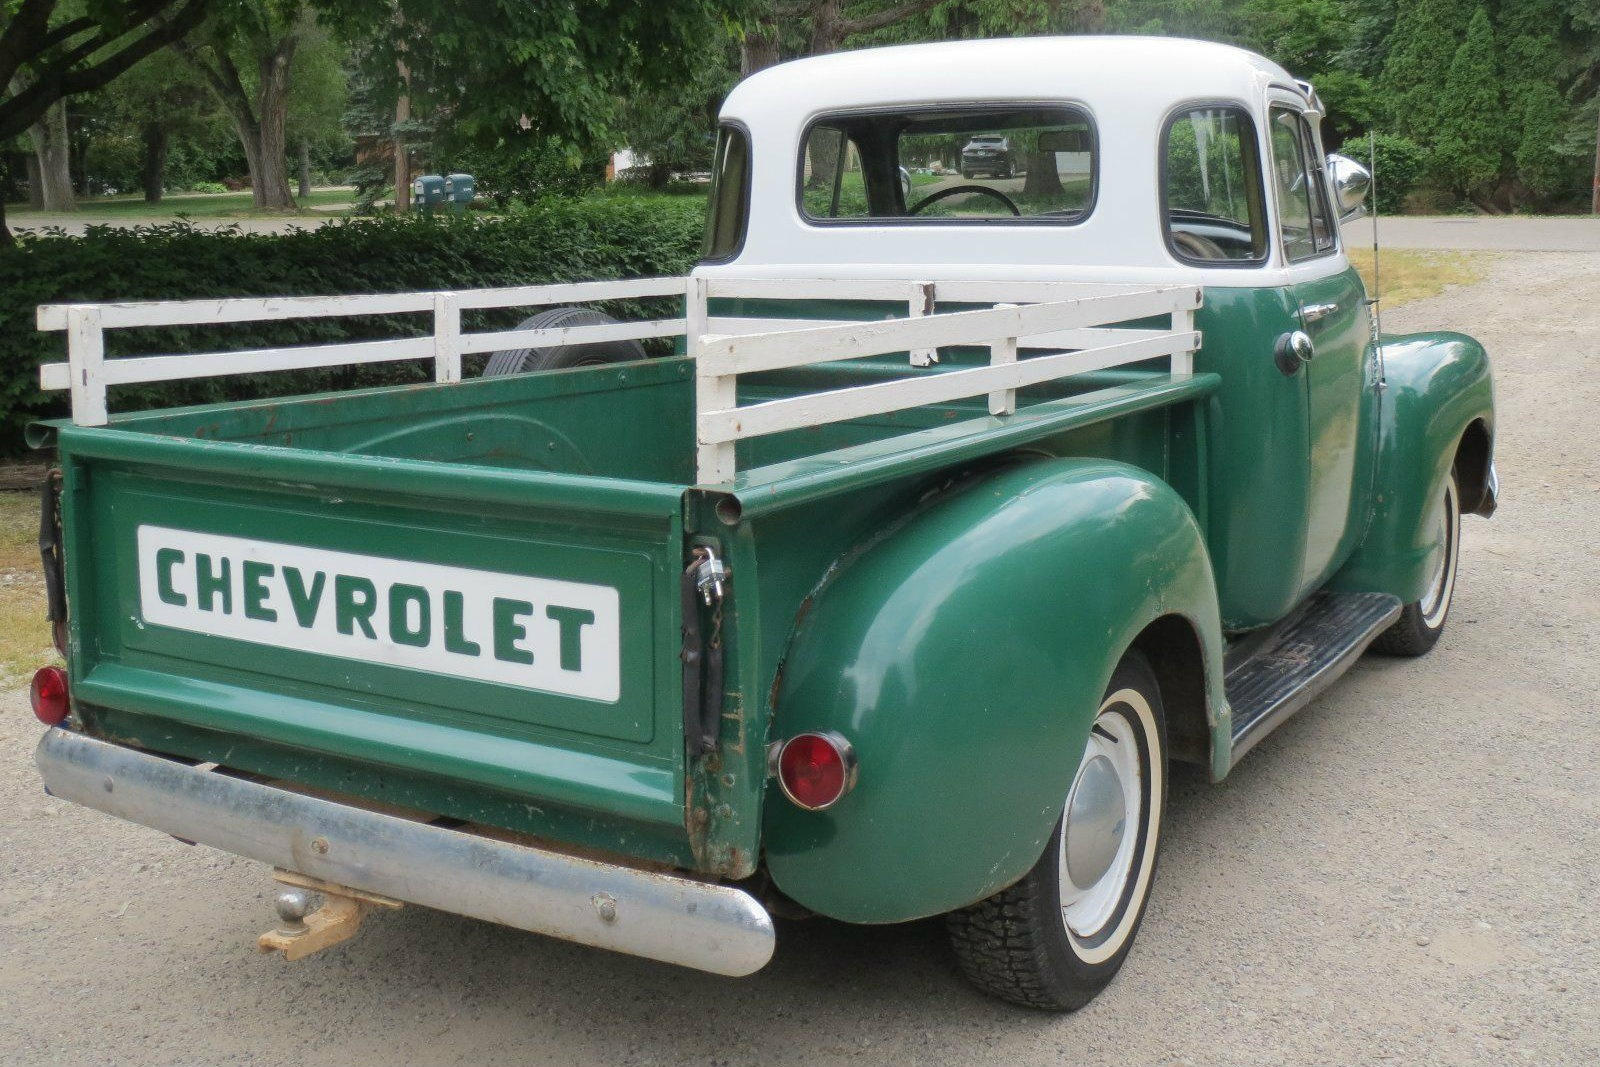 1954 Chevrolet Two Tone Truck Pickup I Love The Stake Sides On This White Walls Wheels Roof And Trim Just Really Make Green Pop Its Such A Period Color